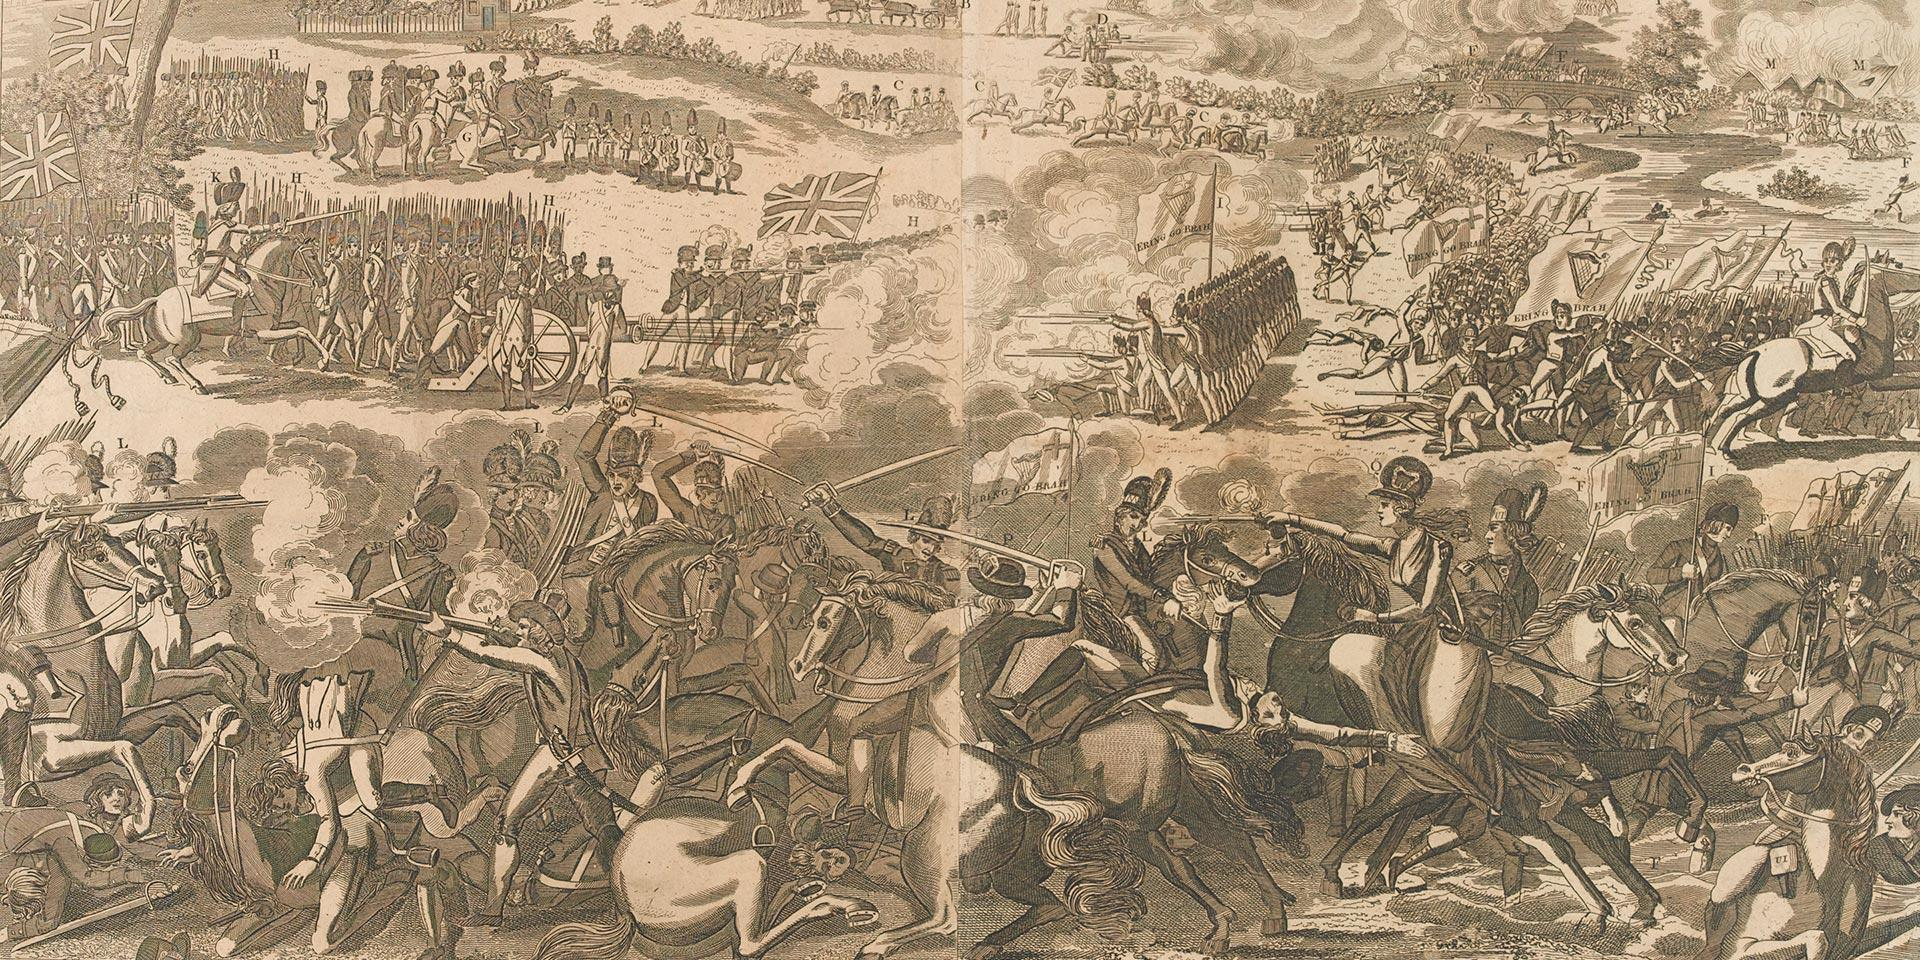 The Battle of Wexford in Ireland fought June 20th 1798